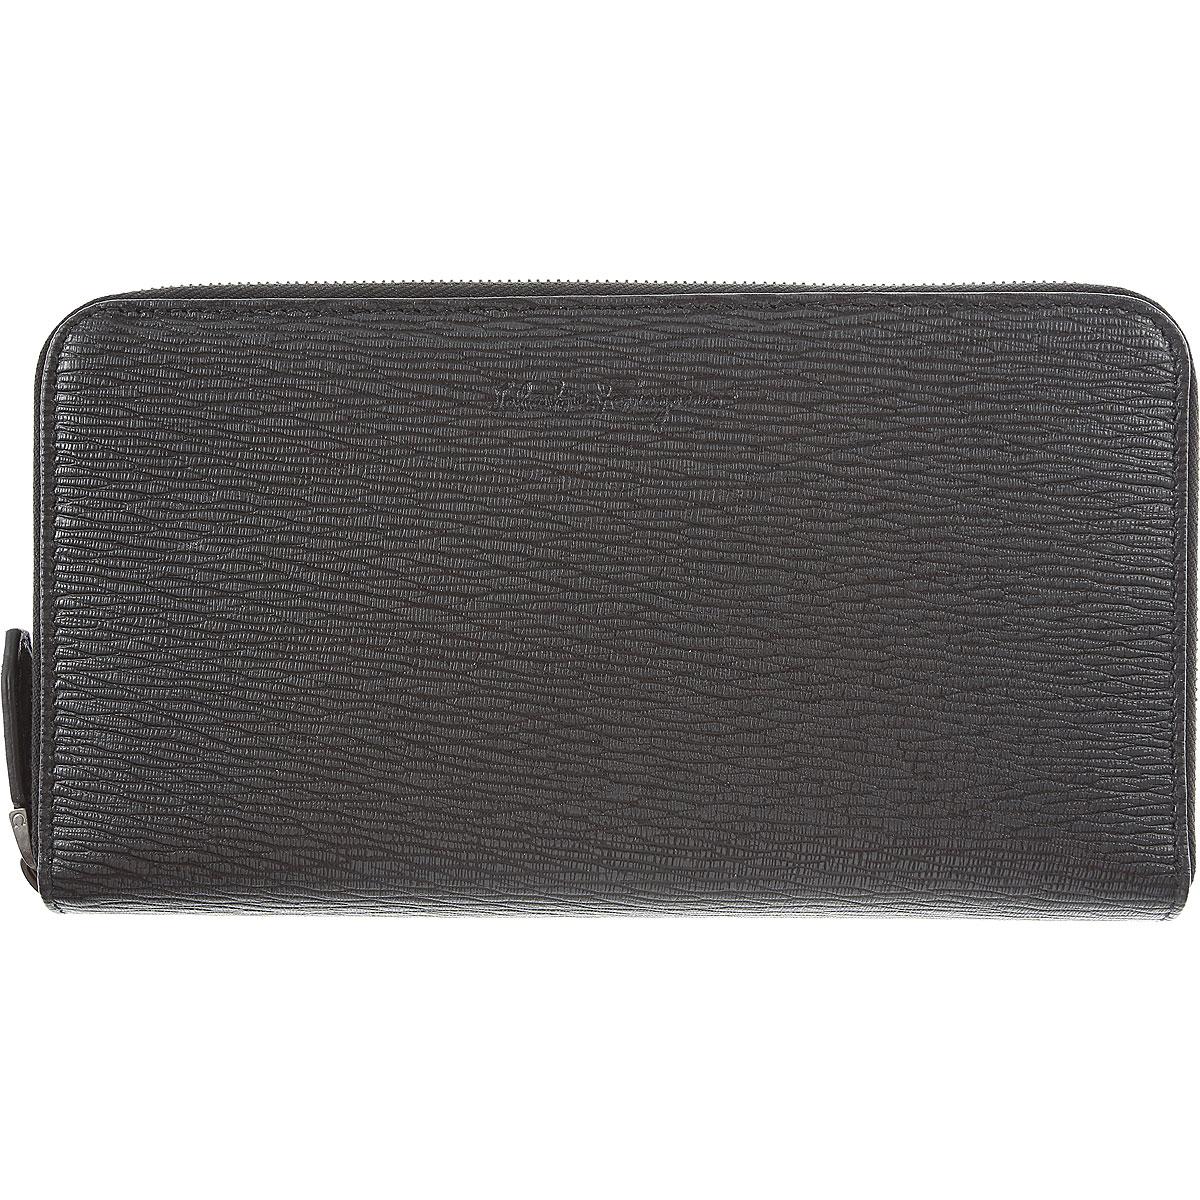 Salvatore Ferragamo Pouches in Outlet Grey USA - GOOFASH